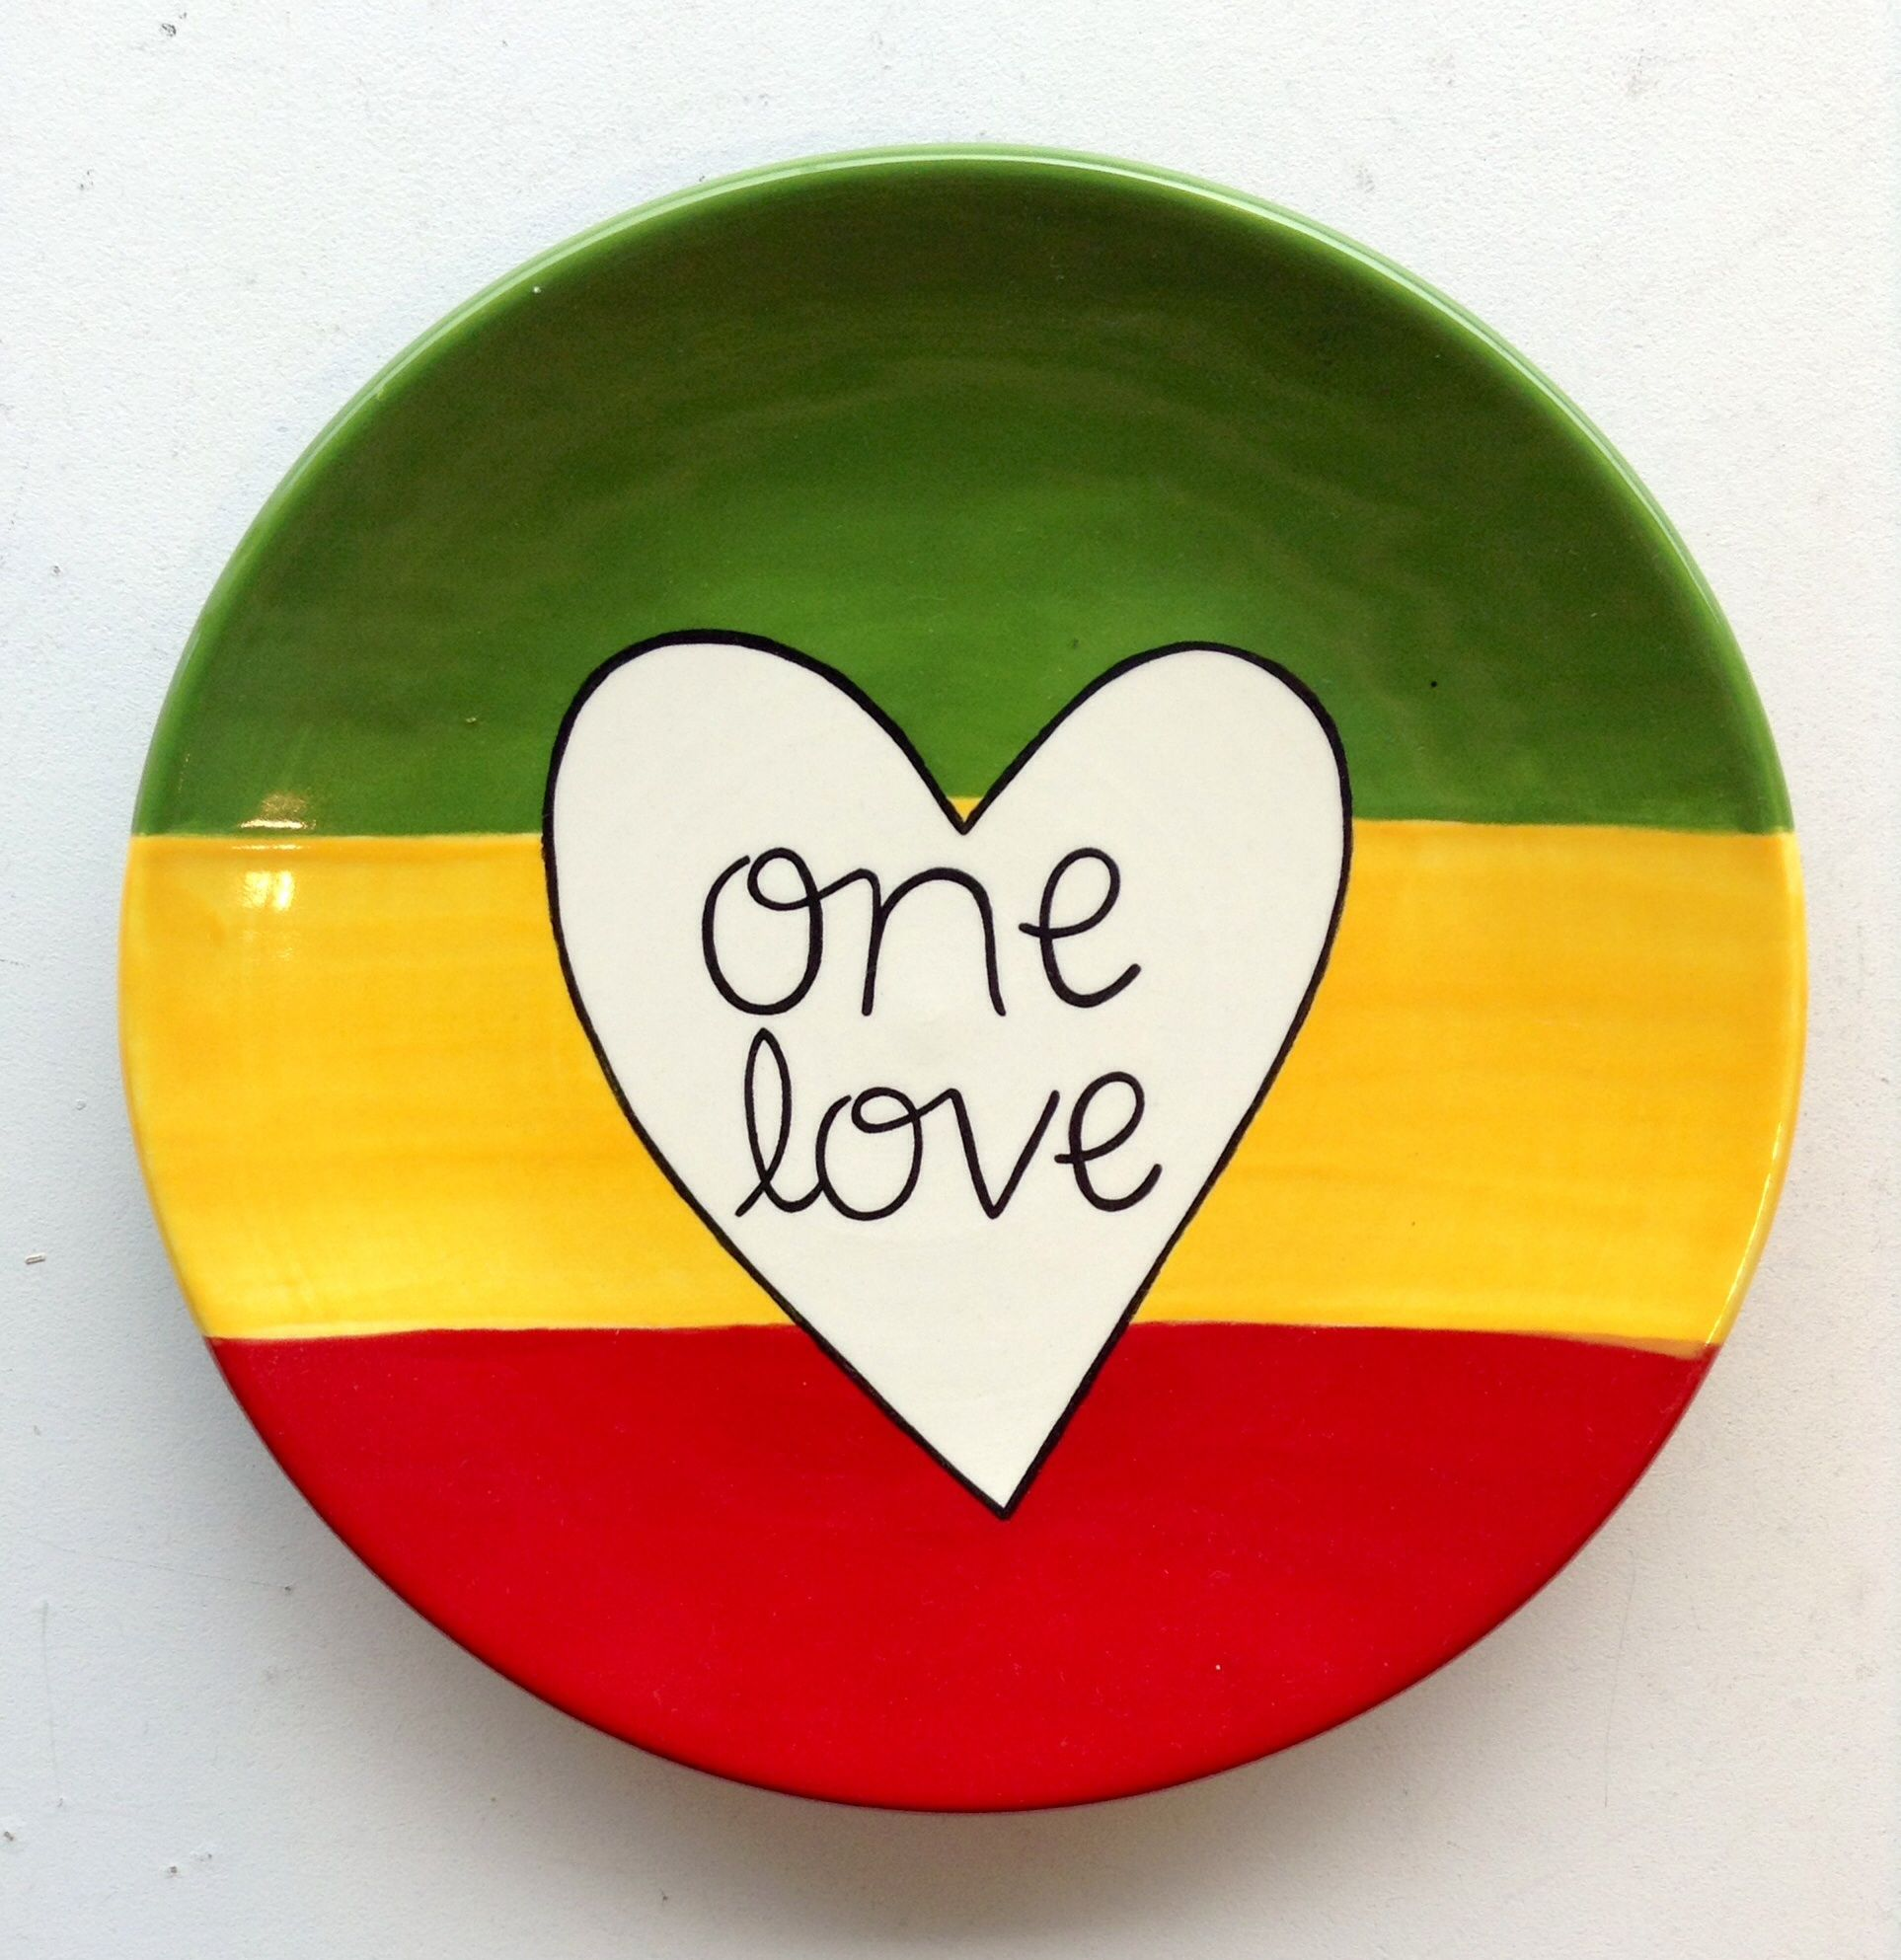 One Love pottery plate painted at Paint Your Pot in Cary NC! & One Love Bob Marley Plate | Paint Your Own Pottery | Paint Your Pot ...